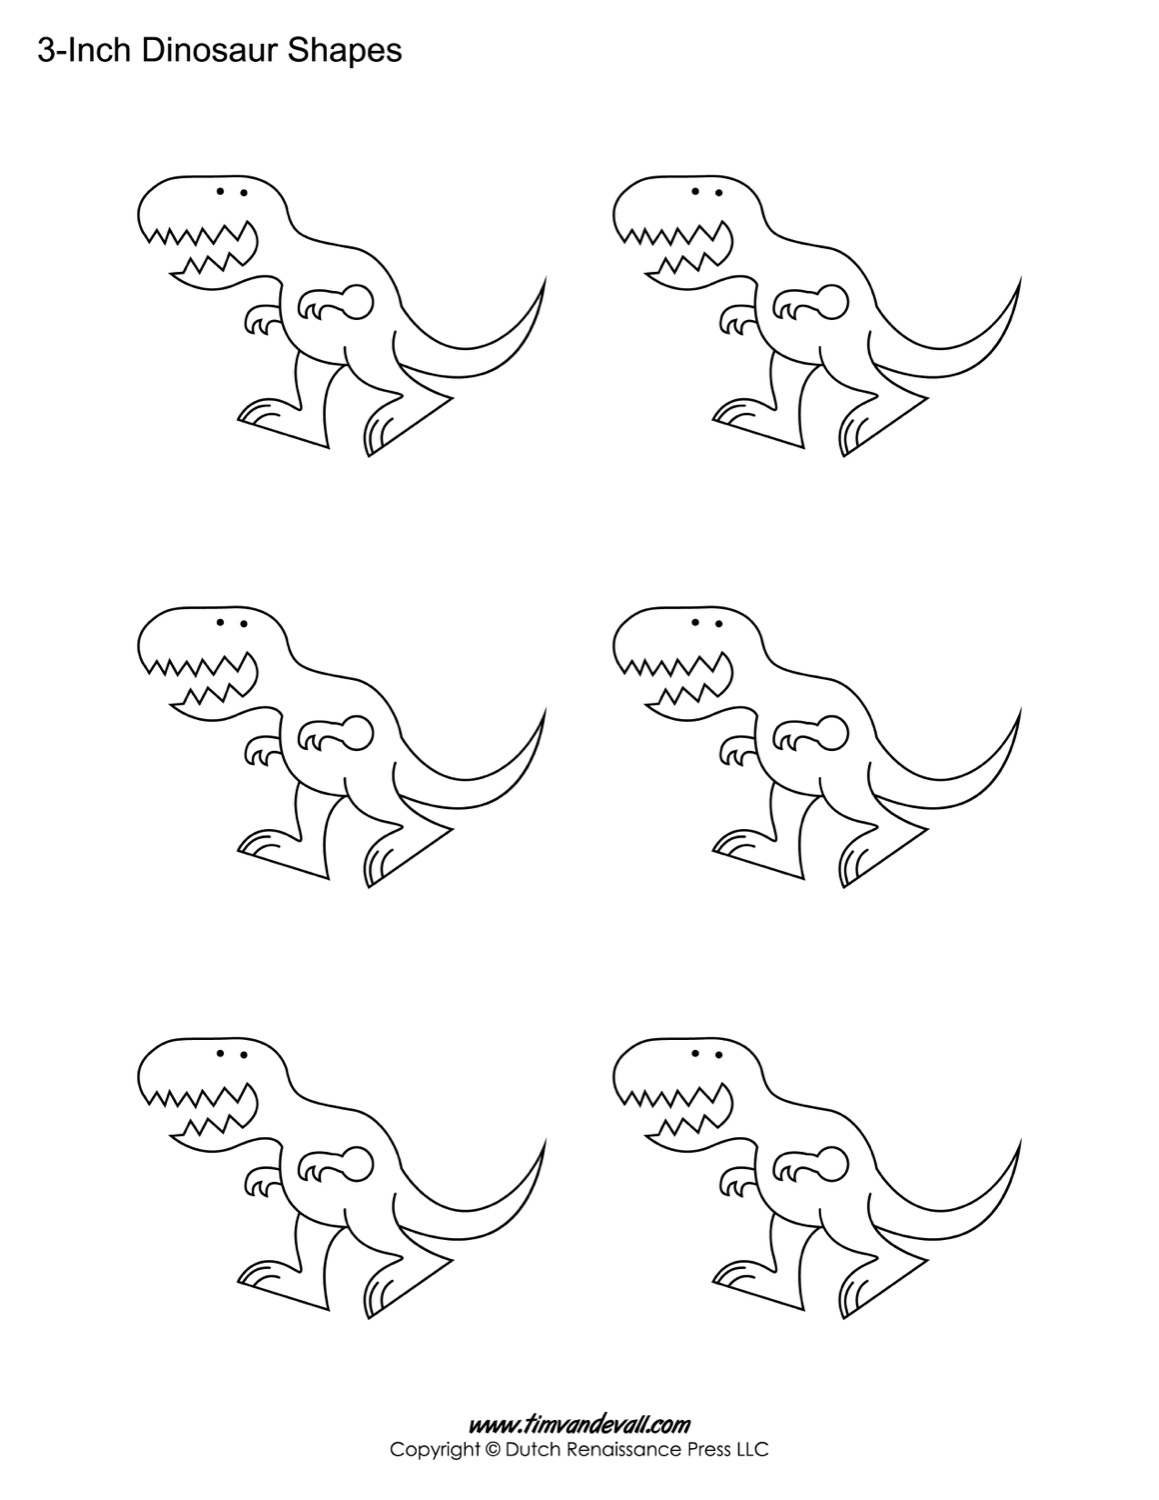 dinosaur printout coloring pages dinosaur free printable coloring pages printout dinosaur